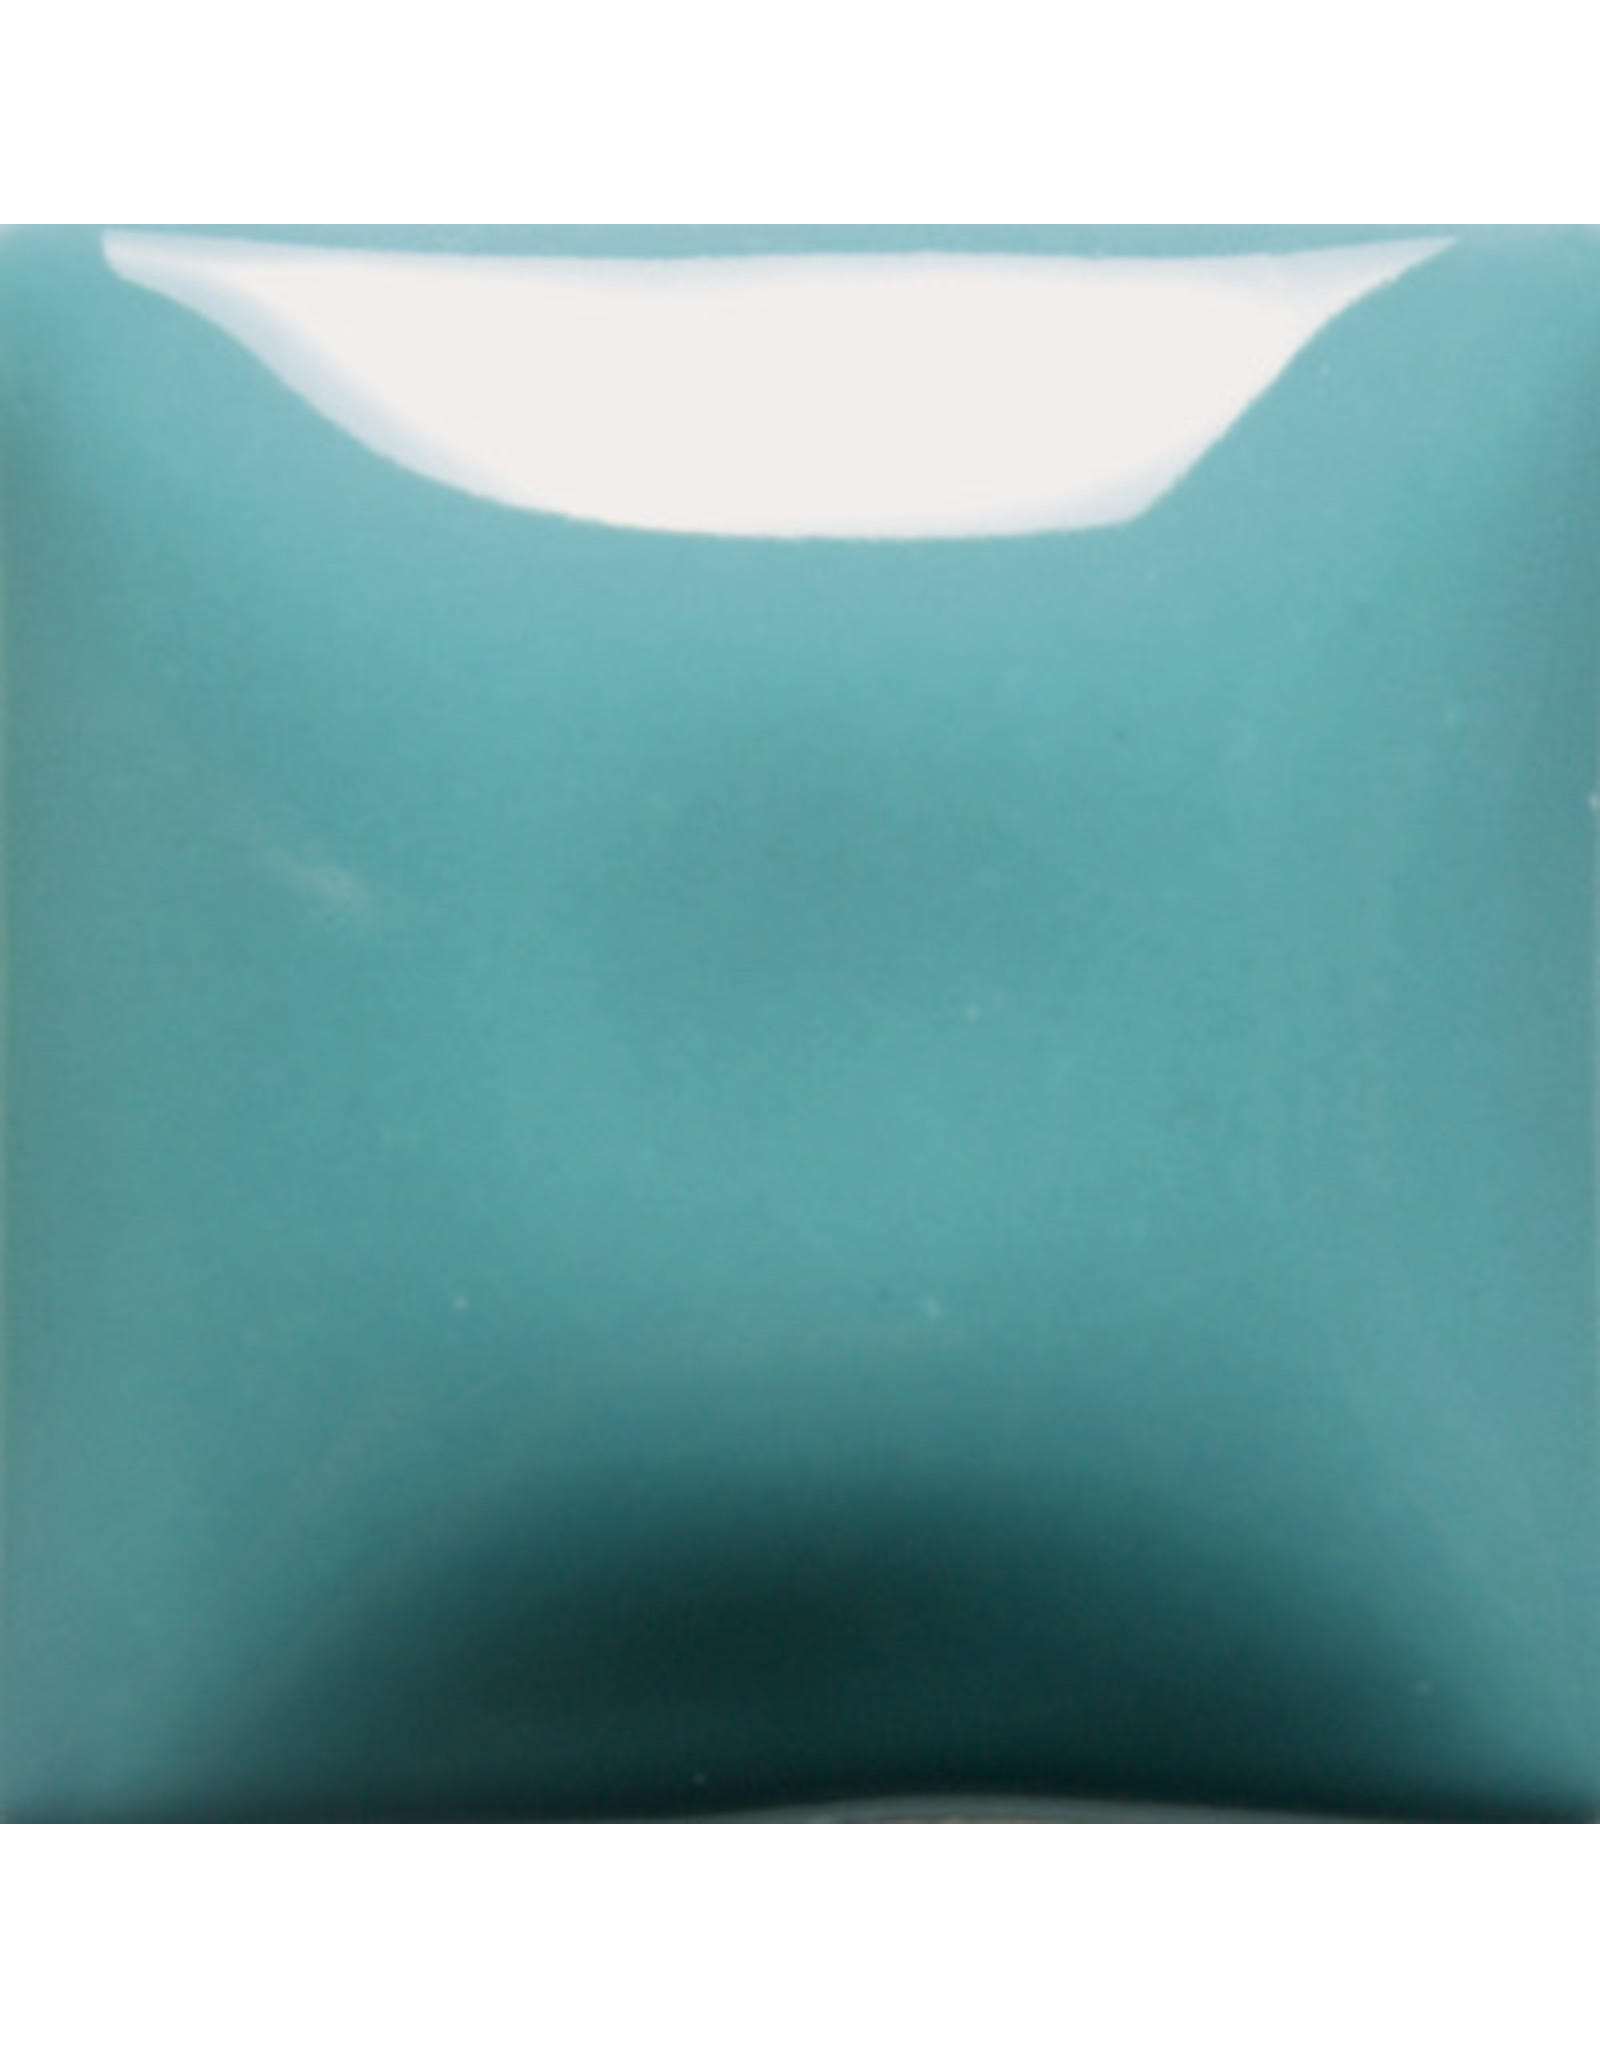 Mayco Mayco Foundations Teal Blue 473ml